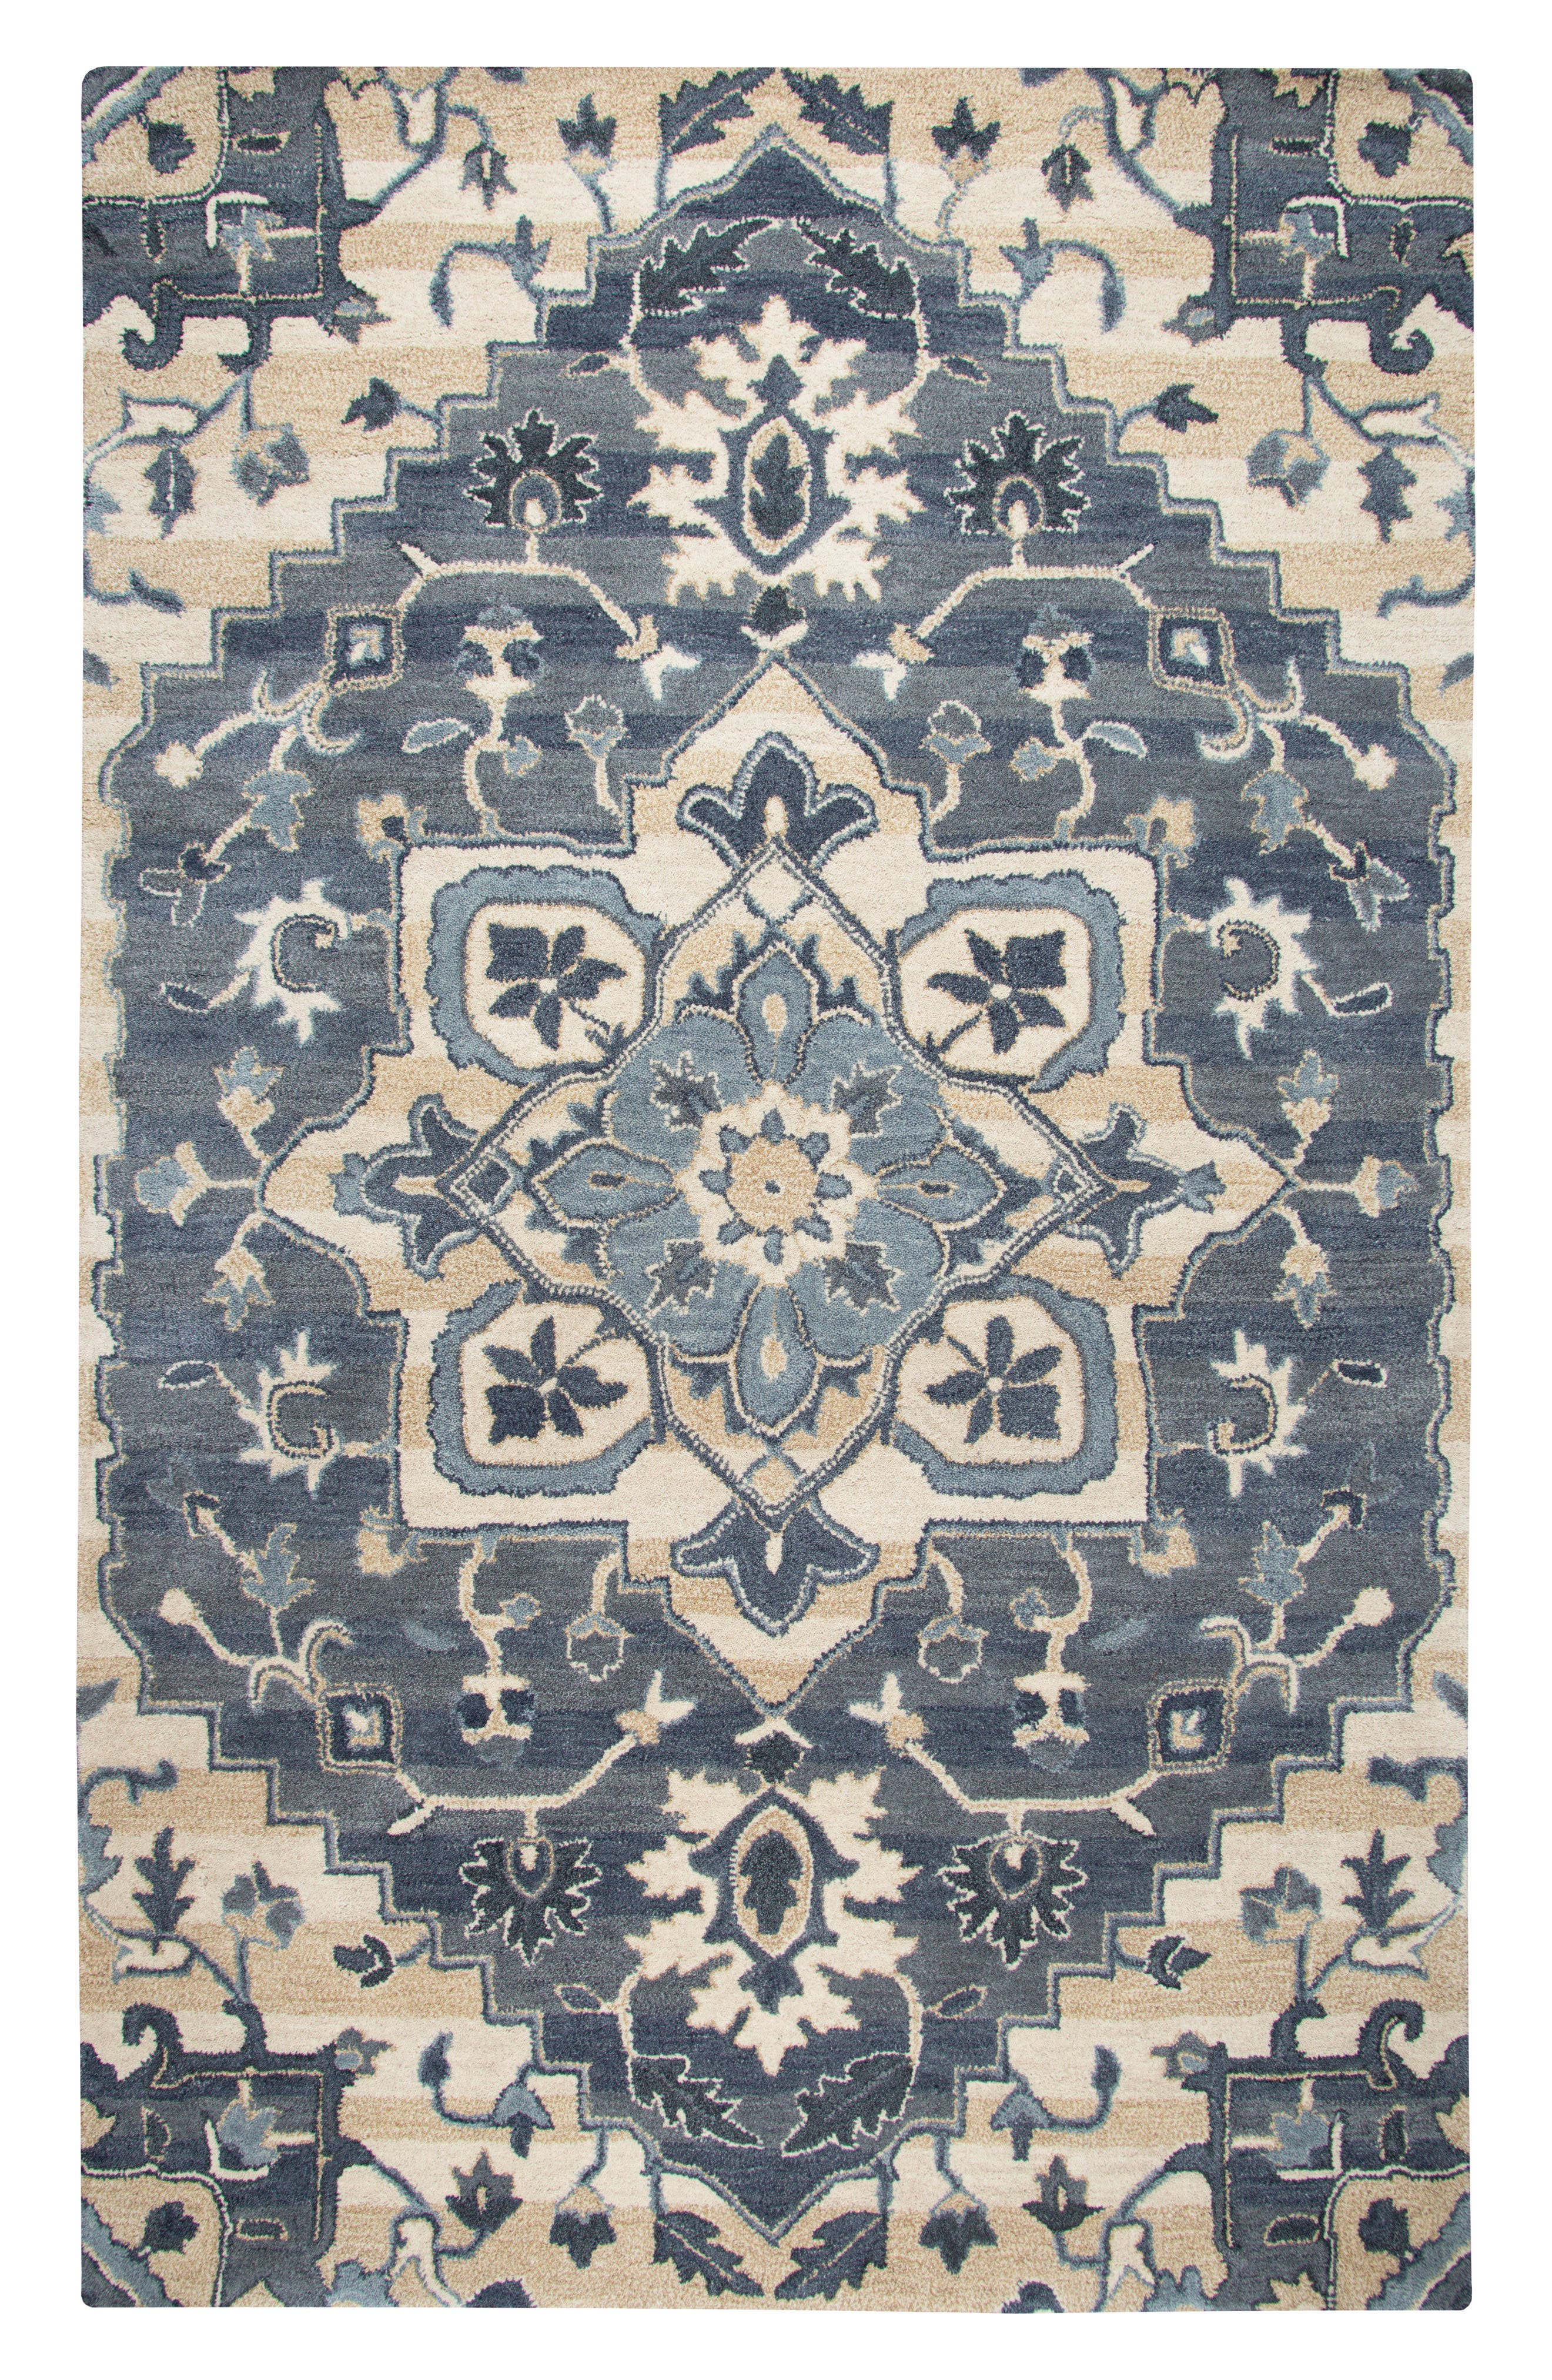 Veronica Hand Tufted Wool Rug,                         Main,                         color, Blue